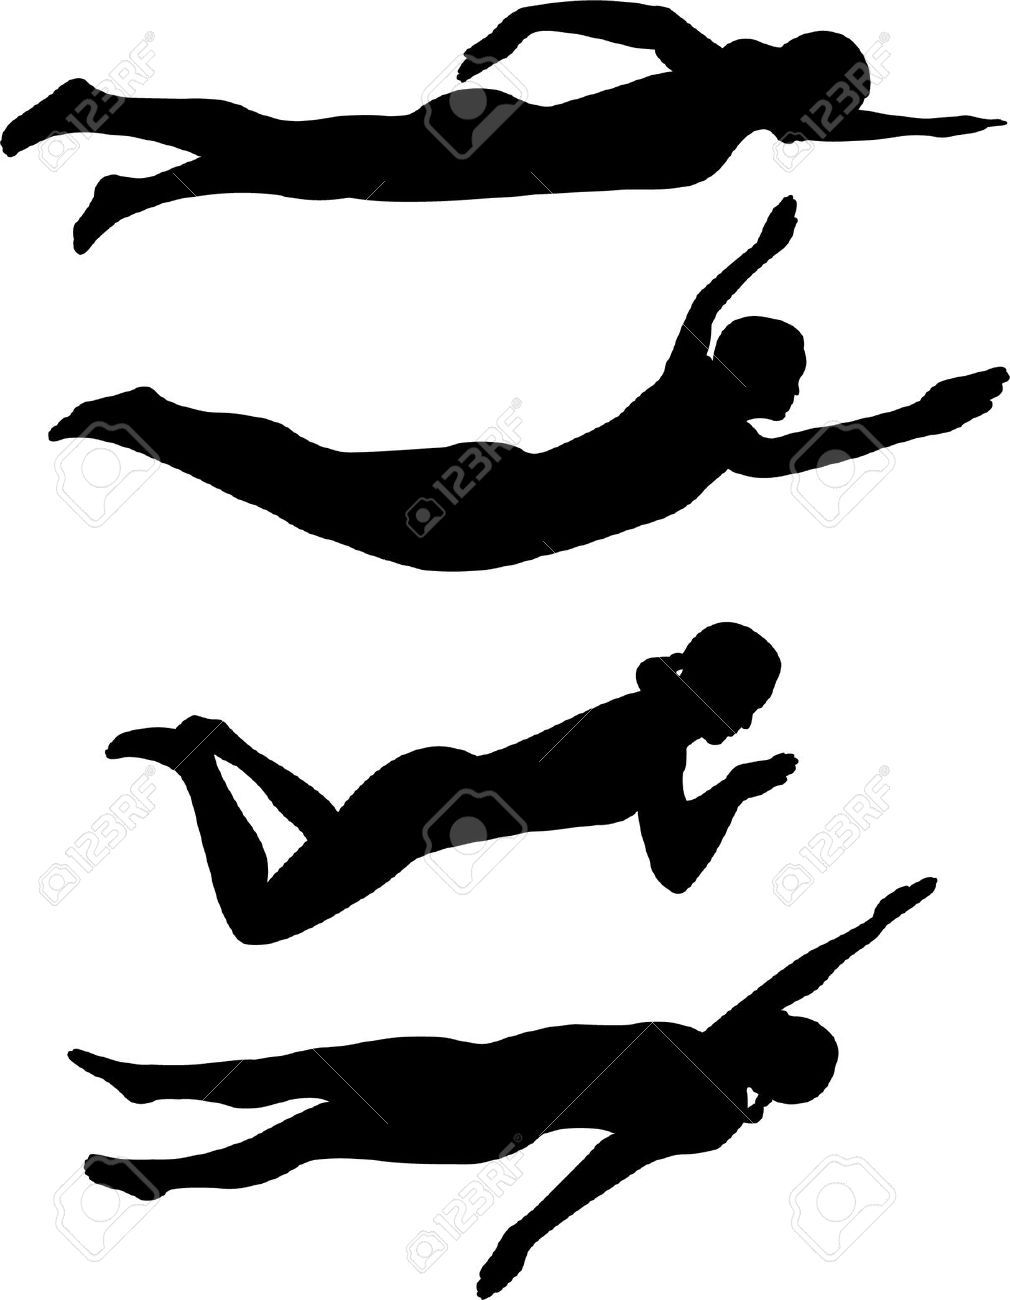 Teen girl swimming clipart black and white graphic library library Image result for Competitive Swimming Clip Art Silhouette ... graphic library library